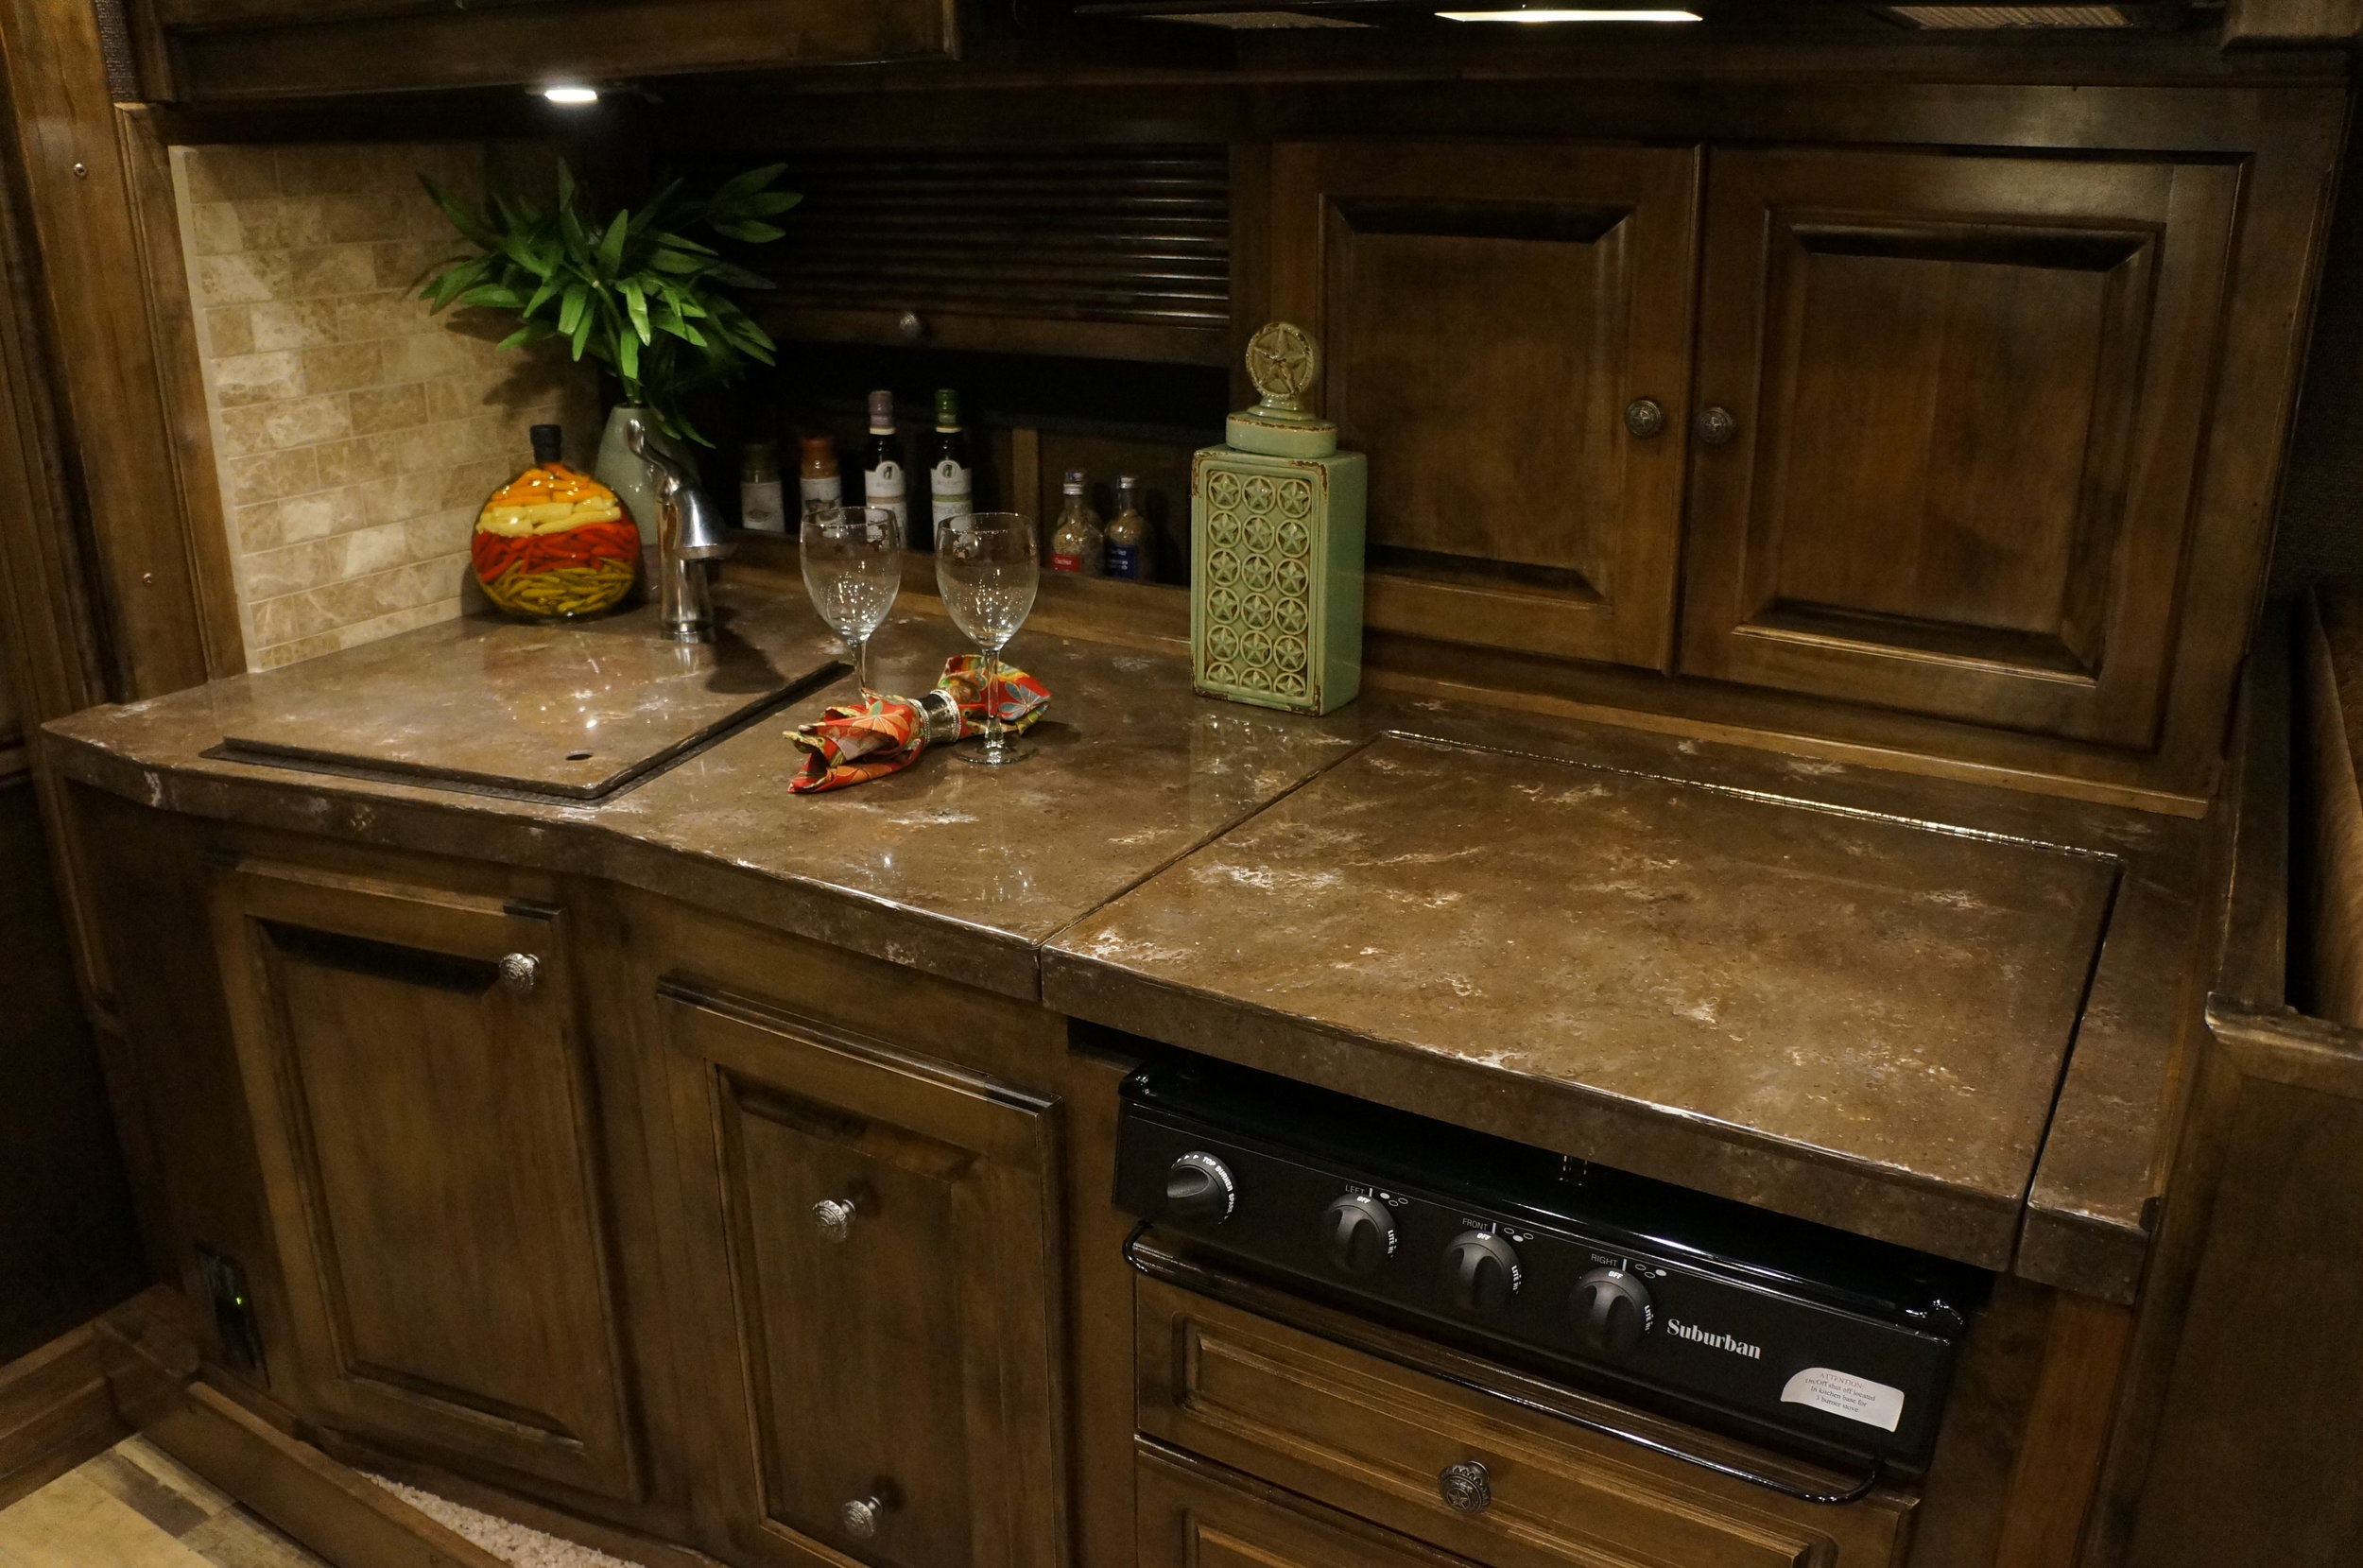 Solid Surface Countertop.JPG